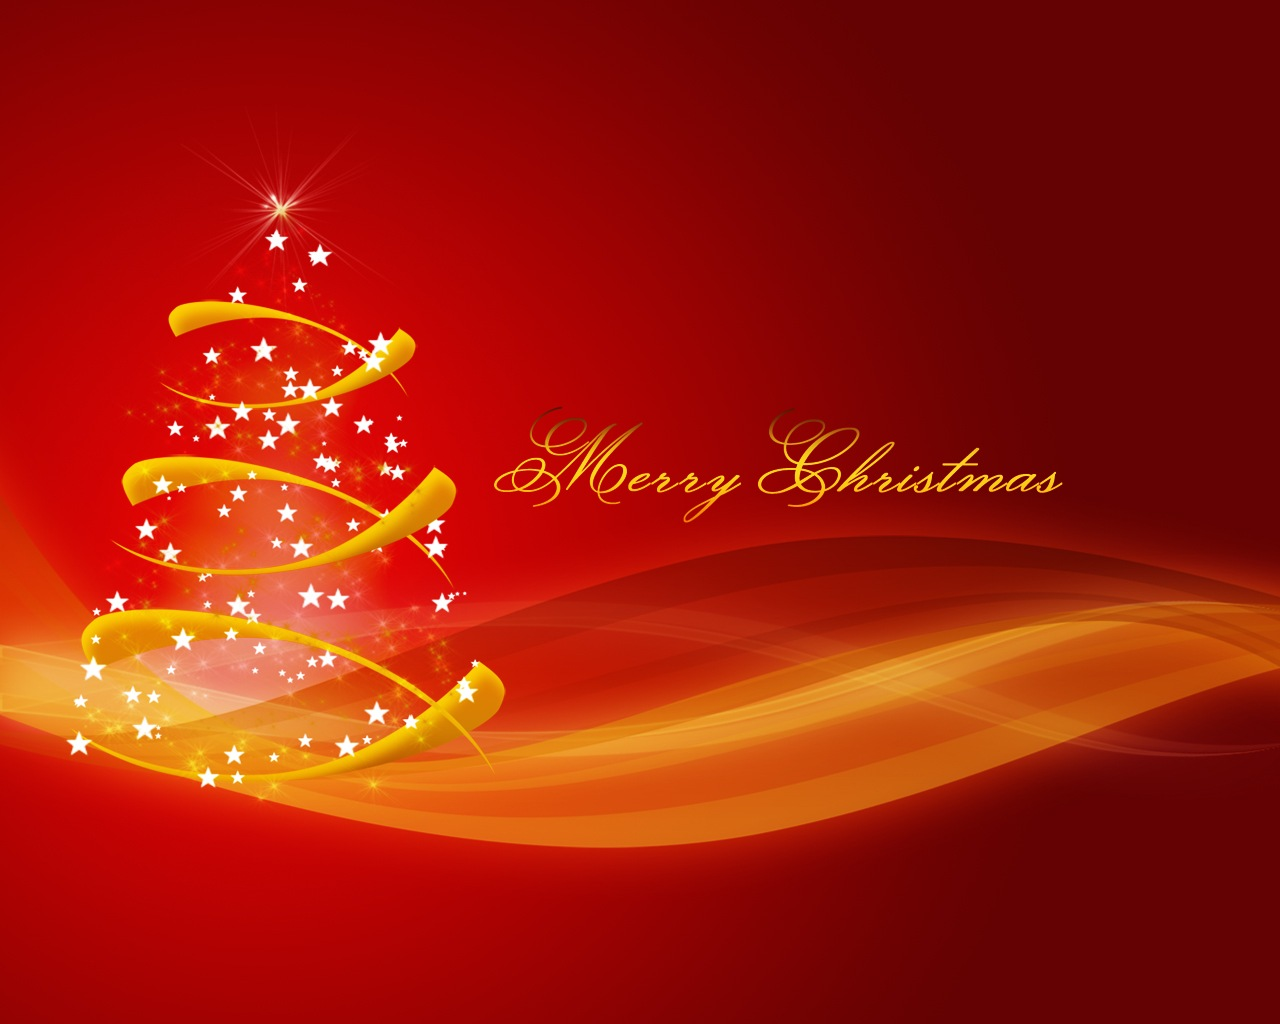 23 Merry Christmas Desktop Wallpapers Best Design Options 1280x1024